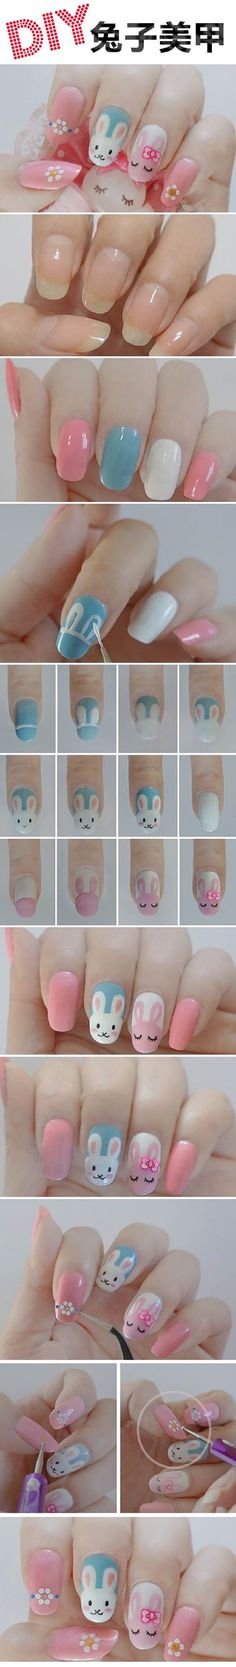 DIY Cute Rabbit Nail Art - 12 Easter-Inspired Nail Art Designs and Tutorials | GleamItUp